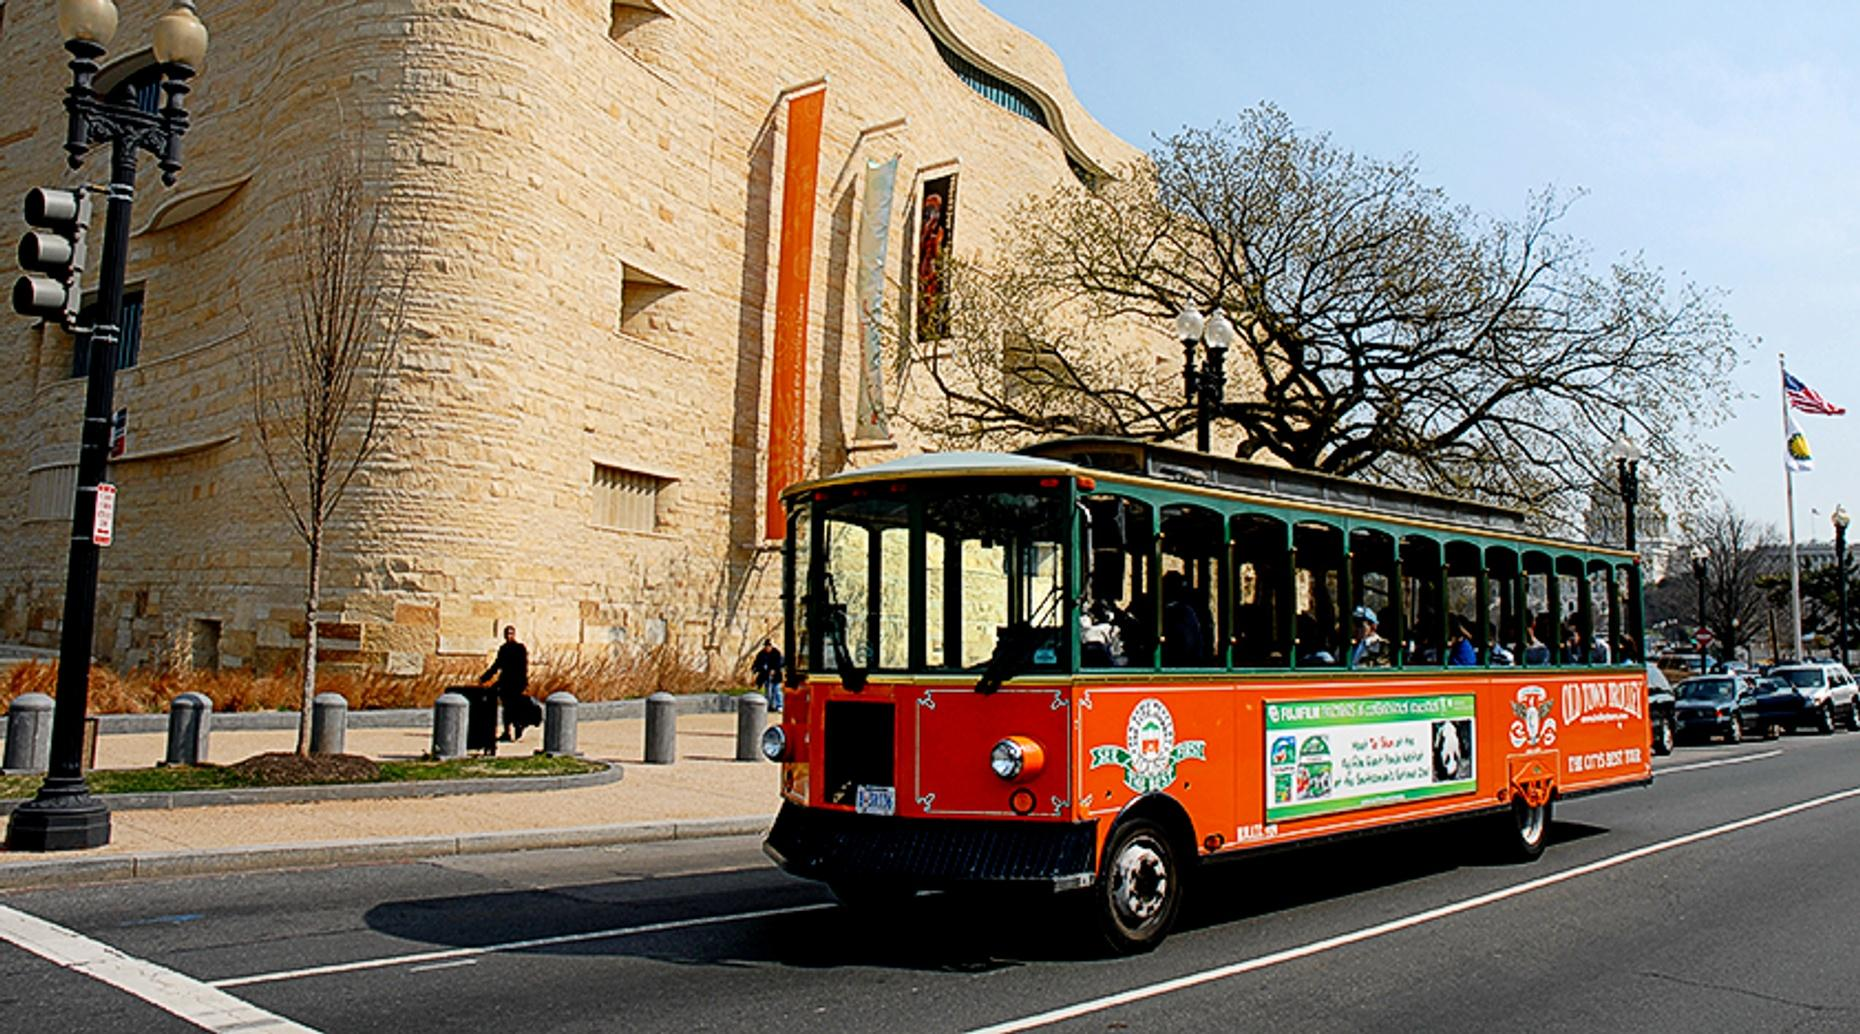 Trolley Tour of Top Sights in D.C.